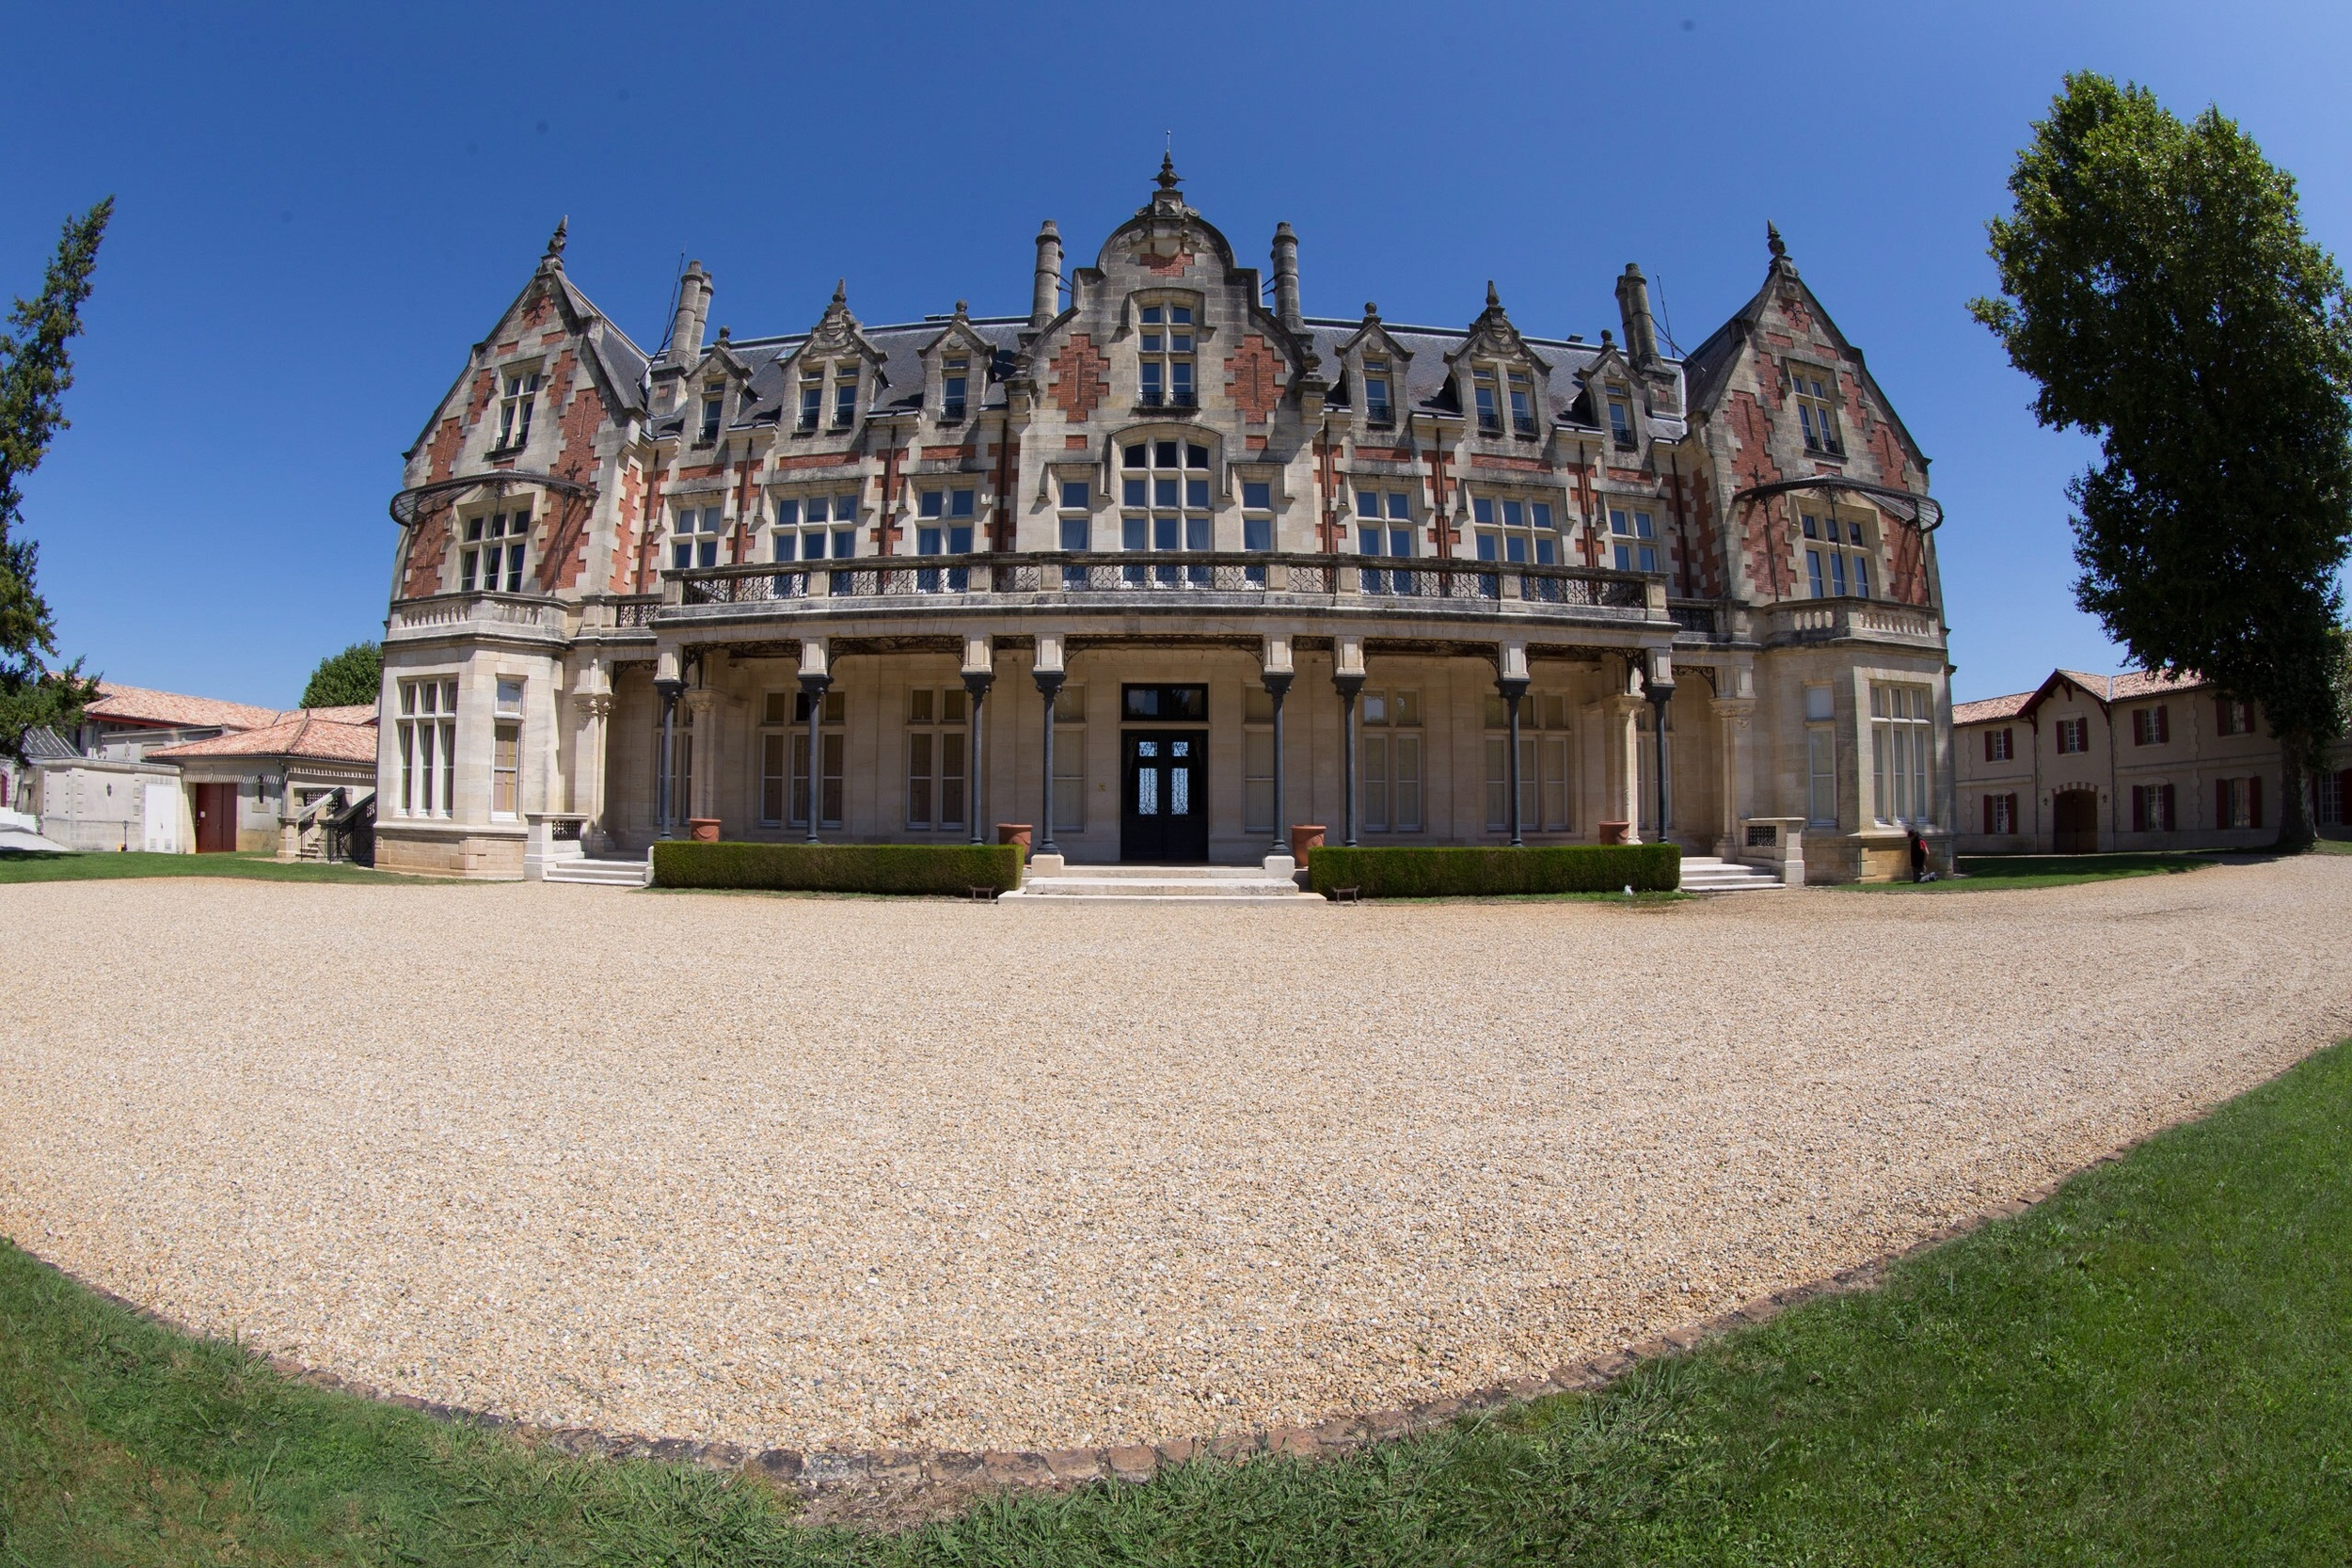 Picture of a Chateau, Bordeaux, France - the fish eye version!